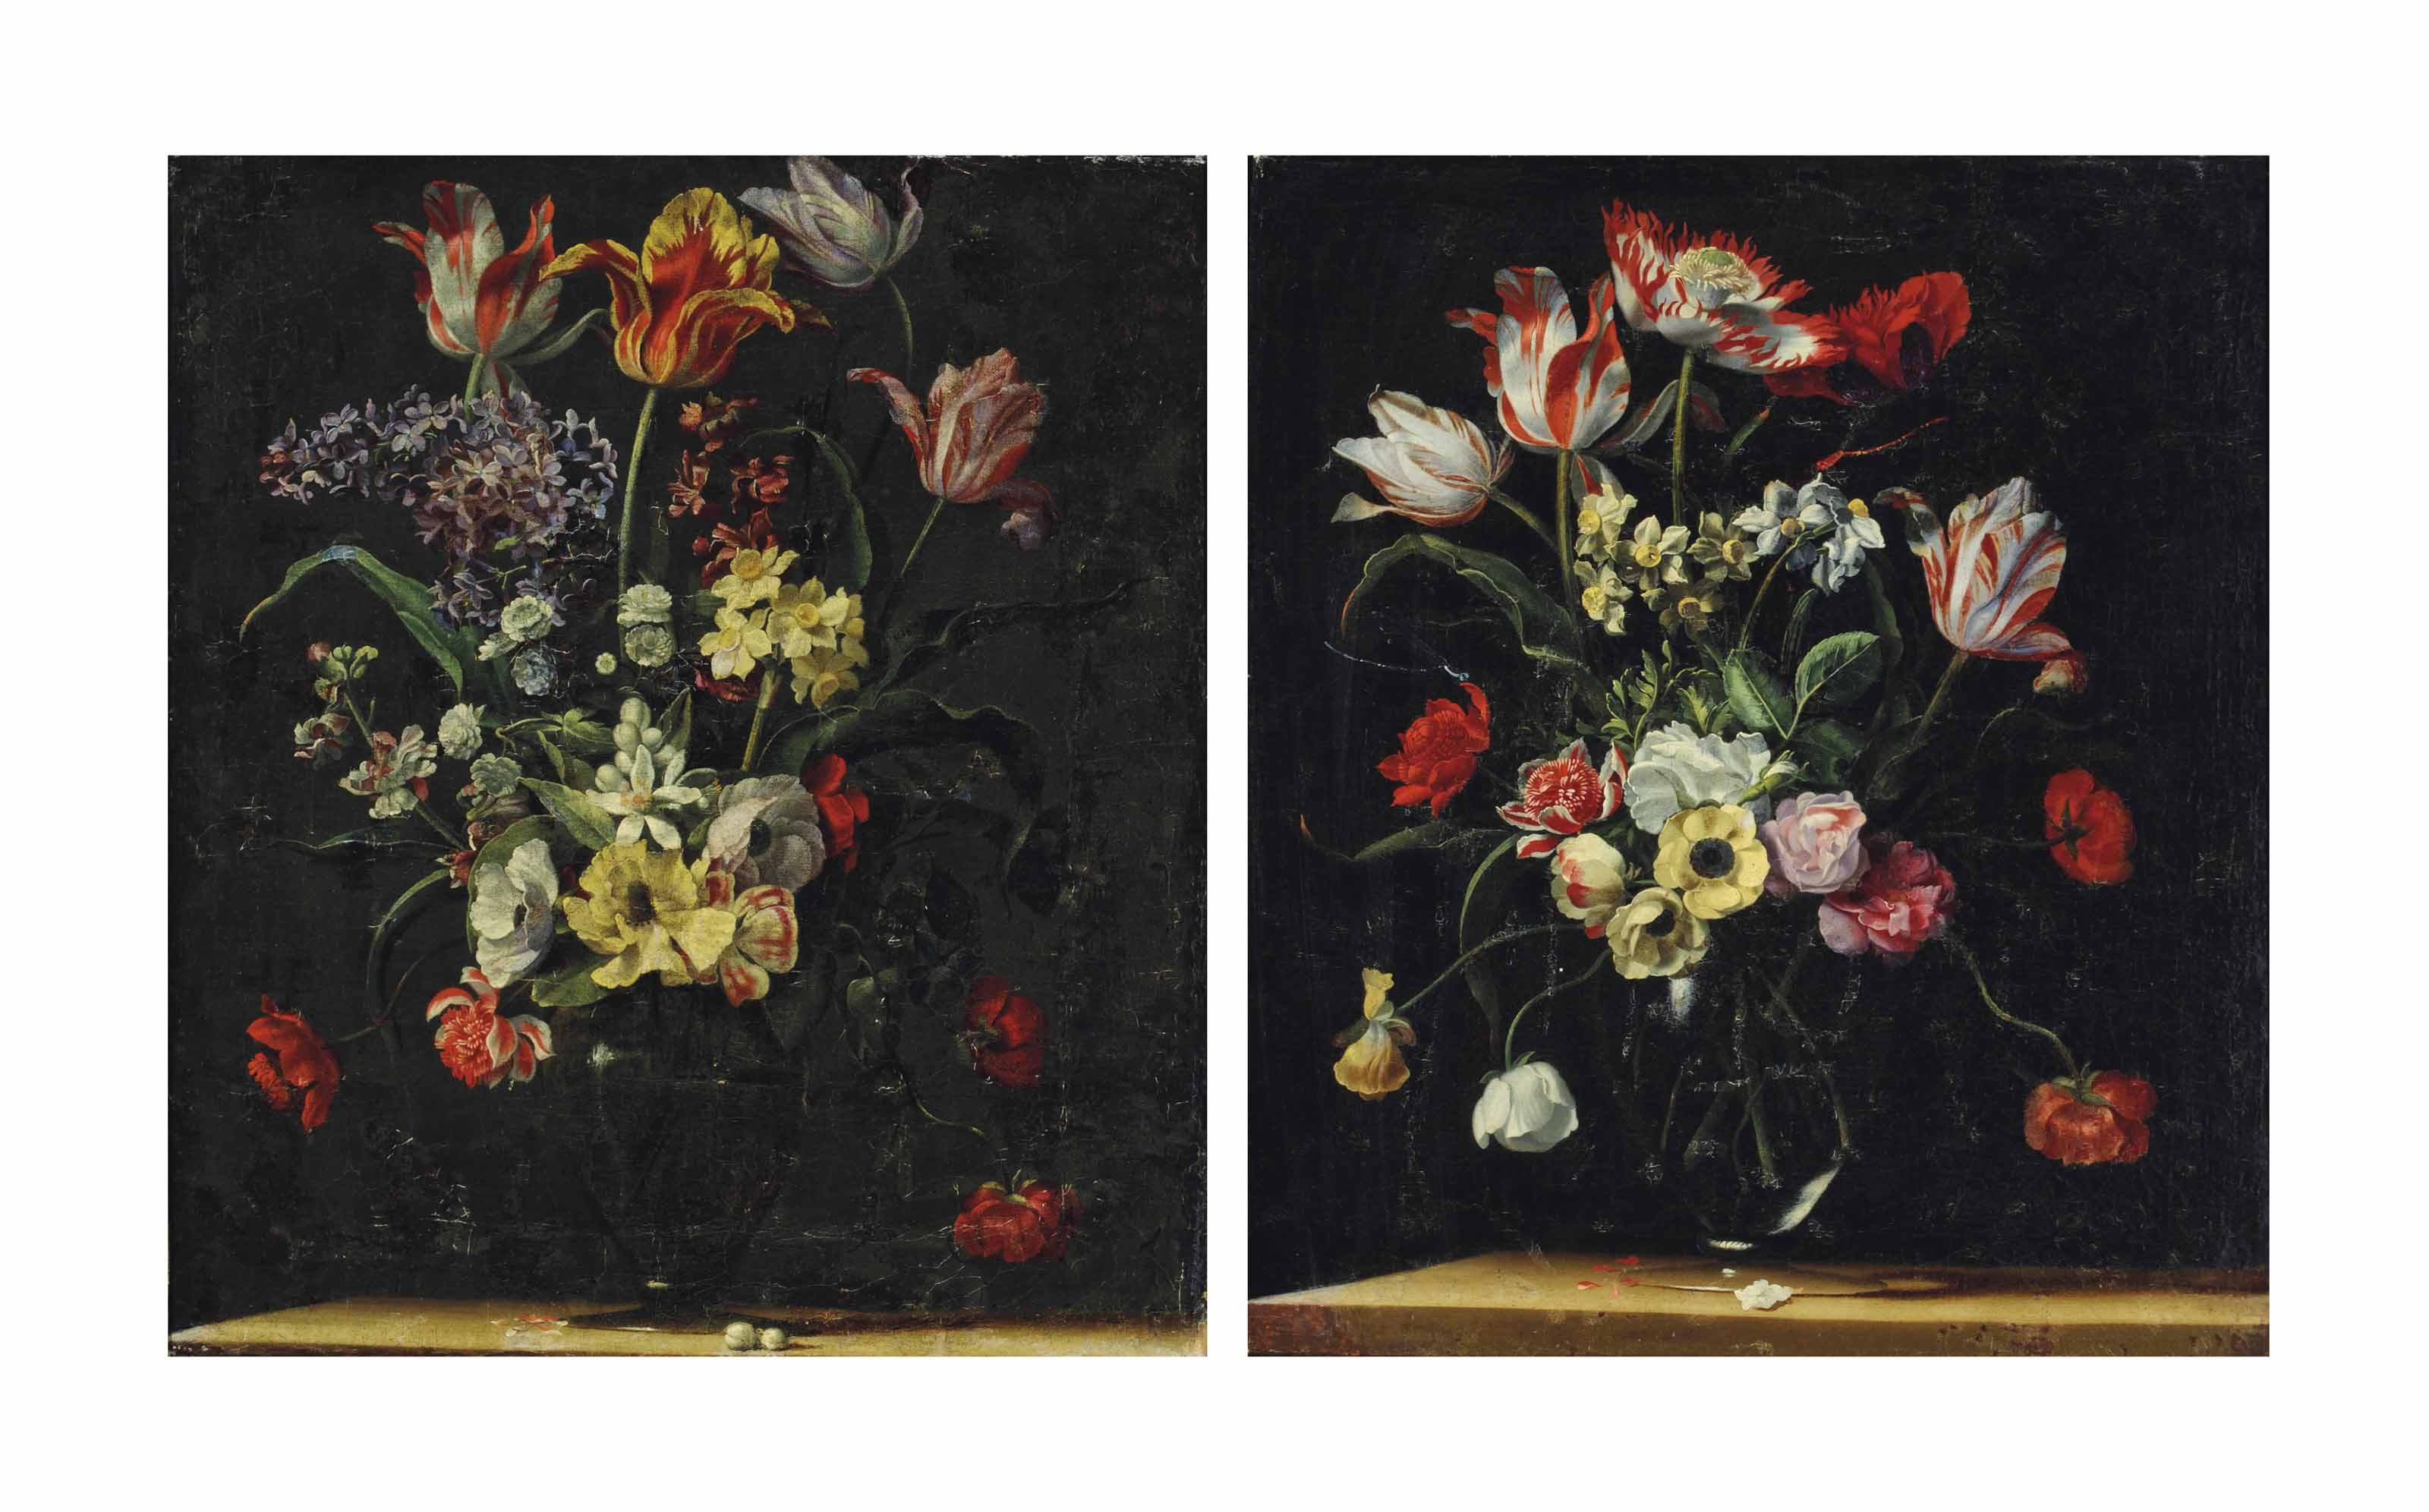 Tulips, daffodils, carnations, poppies and other flowers in a glass vase on a wooden ledge; and Tulips, lilies, daffodils and other flowers in a glass vase on a wooden ledge